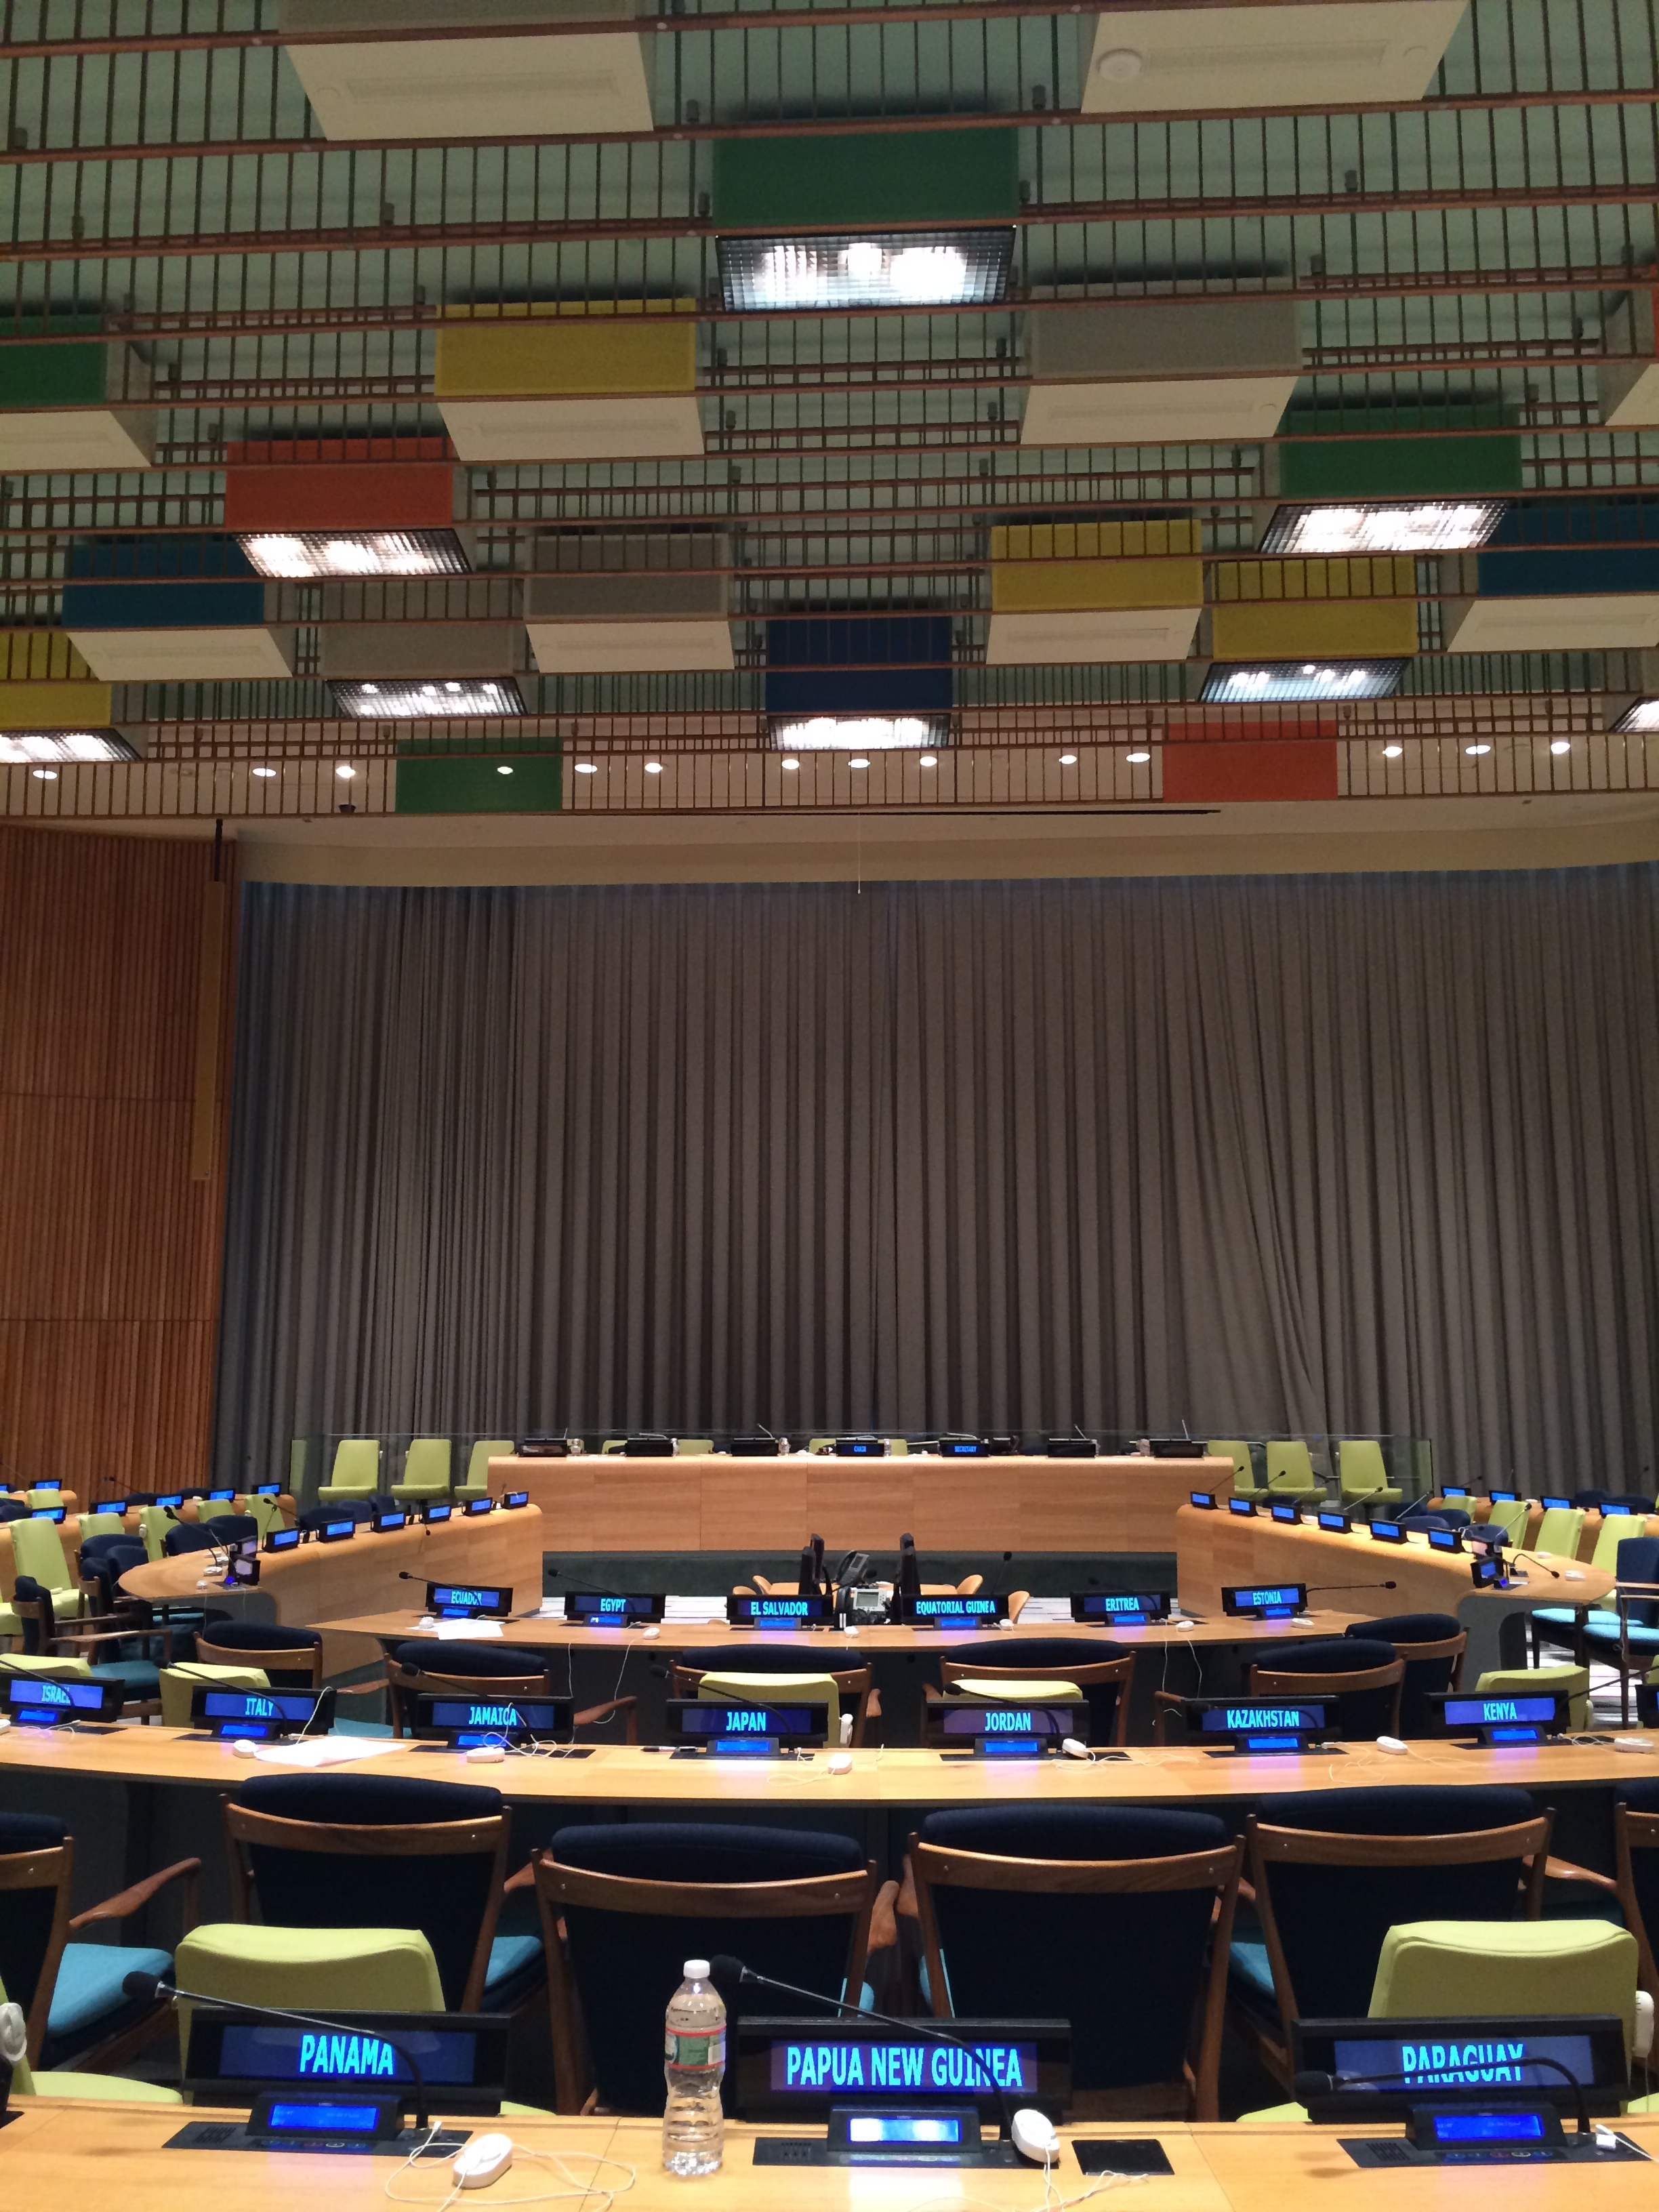 SQUARING THE CIRCLE...box lights in primary colors at the Trusteeship Council Chamber